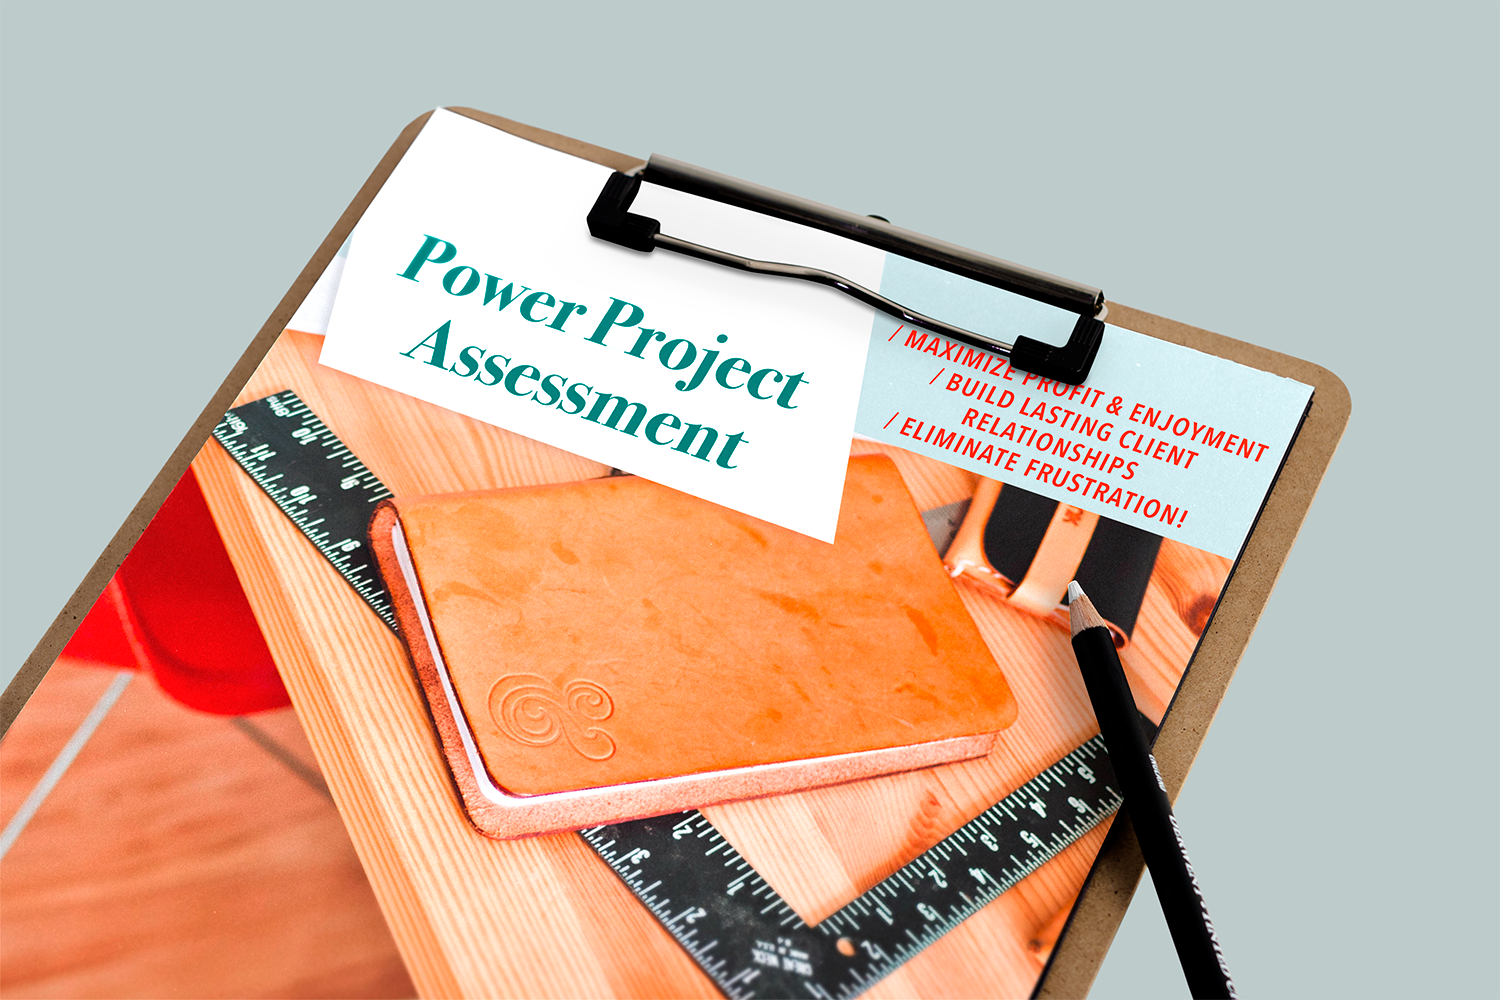 Power Project Assessment on Clipboard